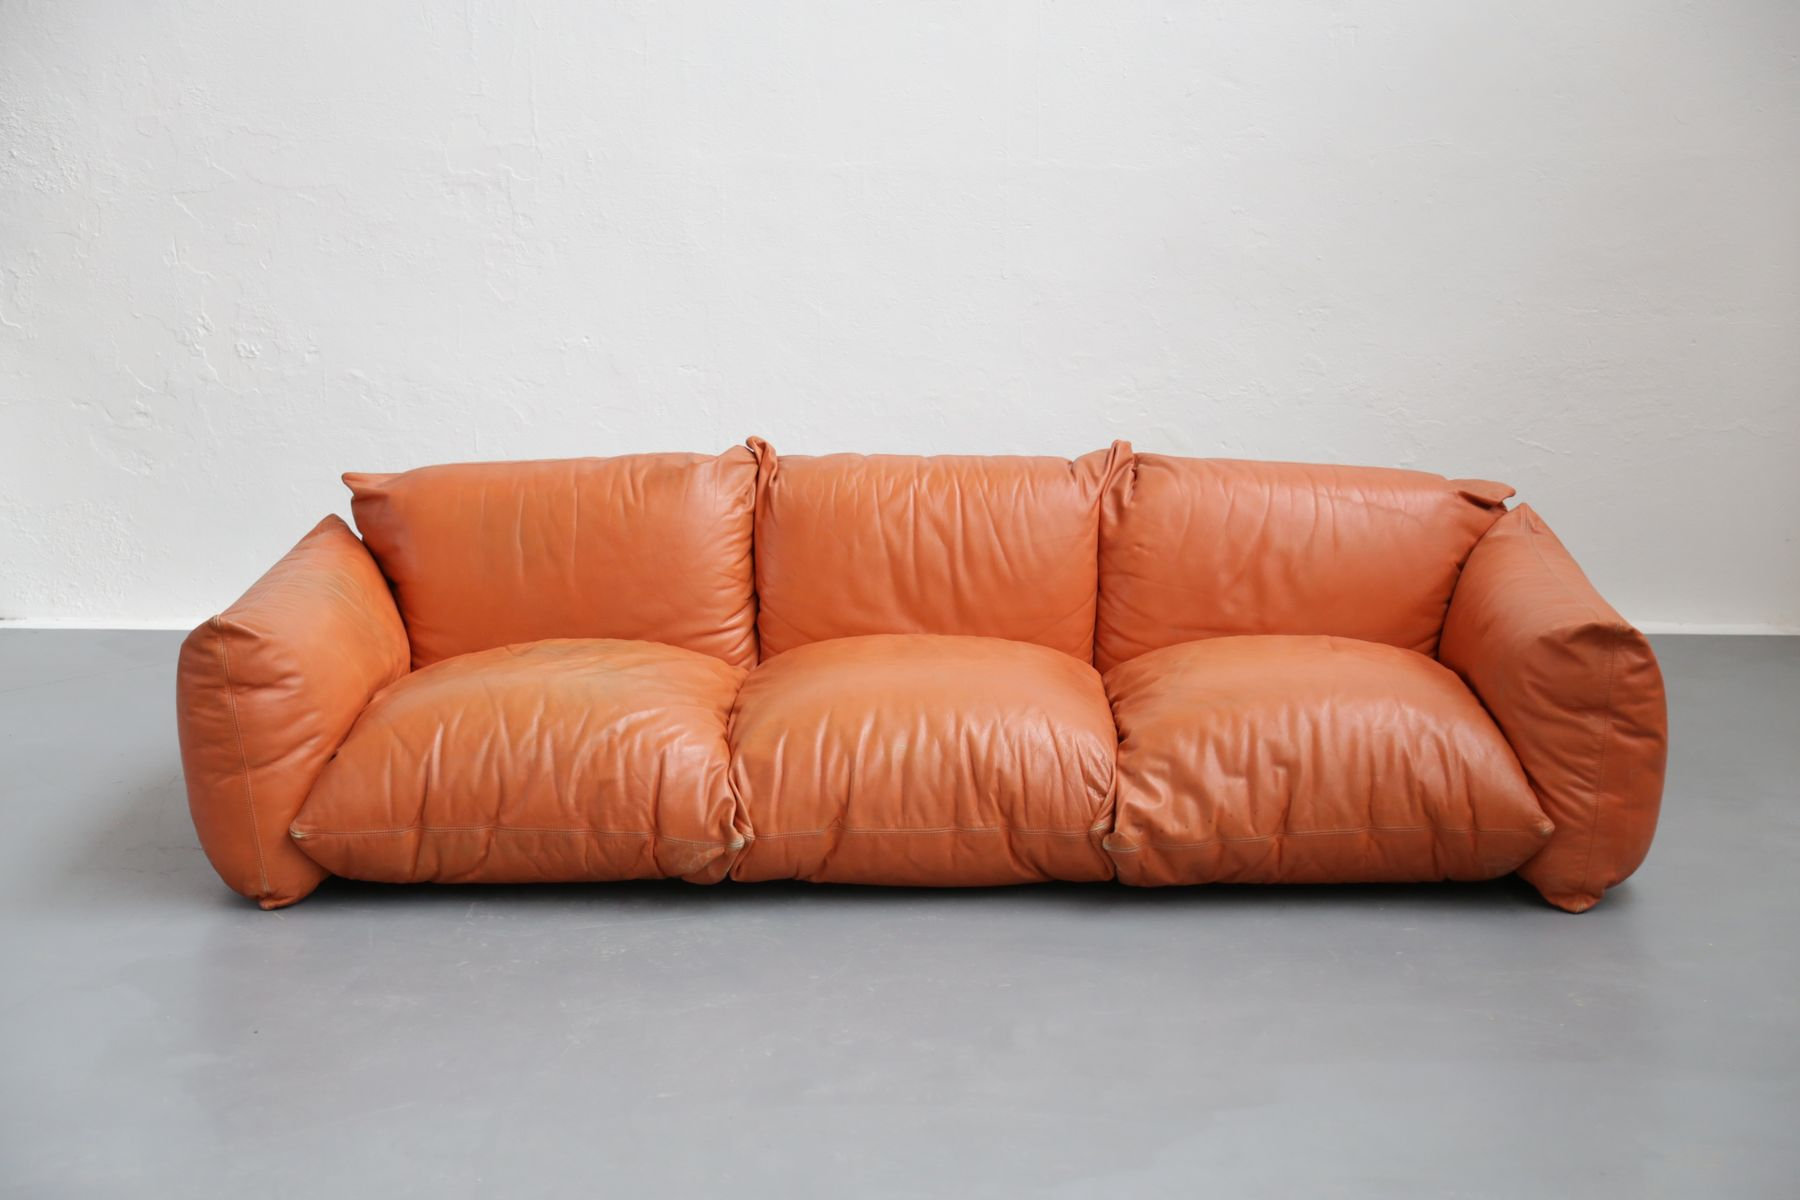 Vintage italian leather sofa by mario marengo for arflex for sale at pamono Italian leather sofa uk